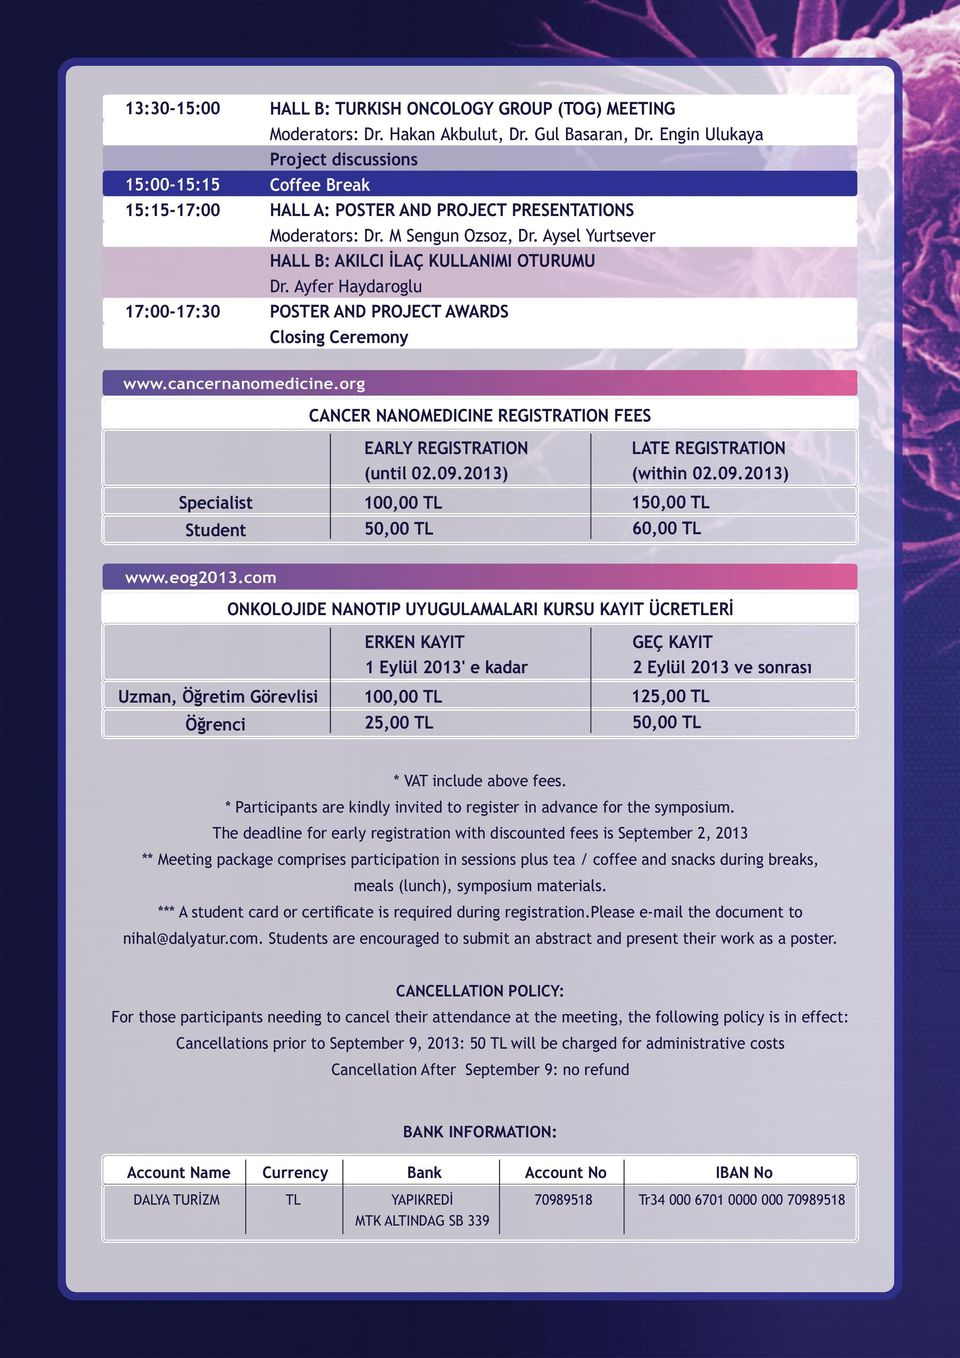 Ayfer Haydaroglu POSTER AND PROJECT AWARDS Closing Ceremony CANCER NANOMEDICINE REGISTRATION FEES EARLY REGISTRATION (until 02.09.2013) LATE REGISTRATION (within 02.09.2013) Specialist 100,00 TL 150,00 TL Student 50,00 TL 60,00 TL www.